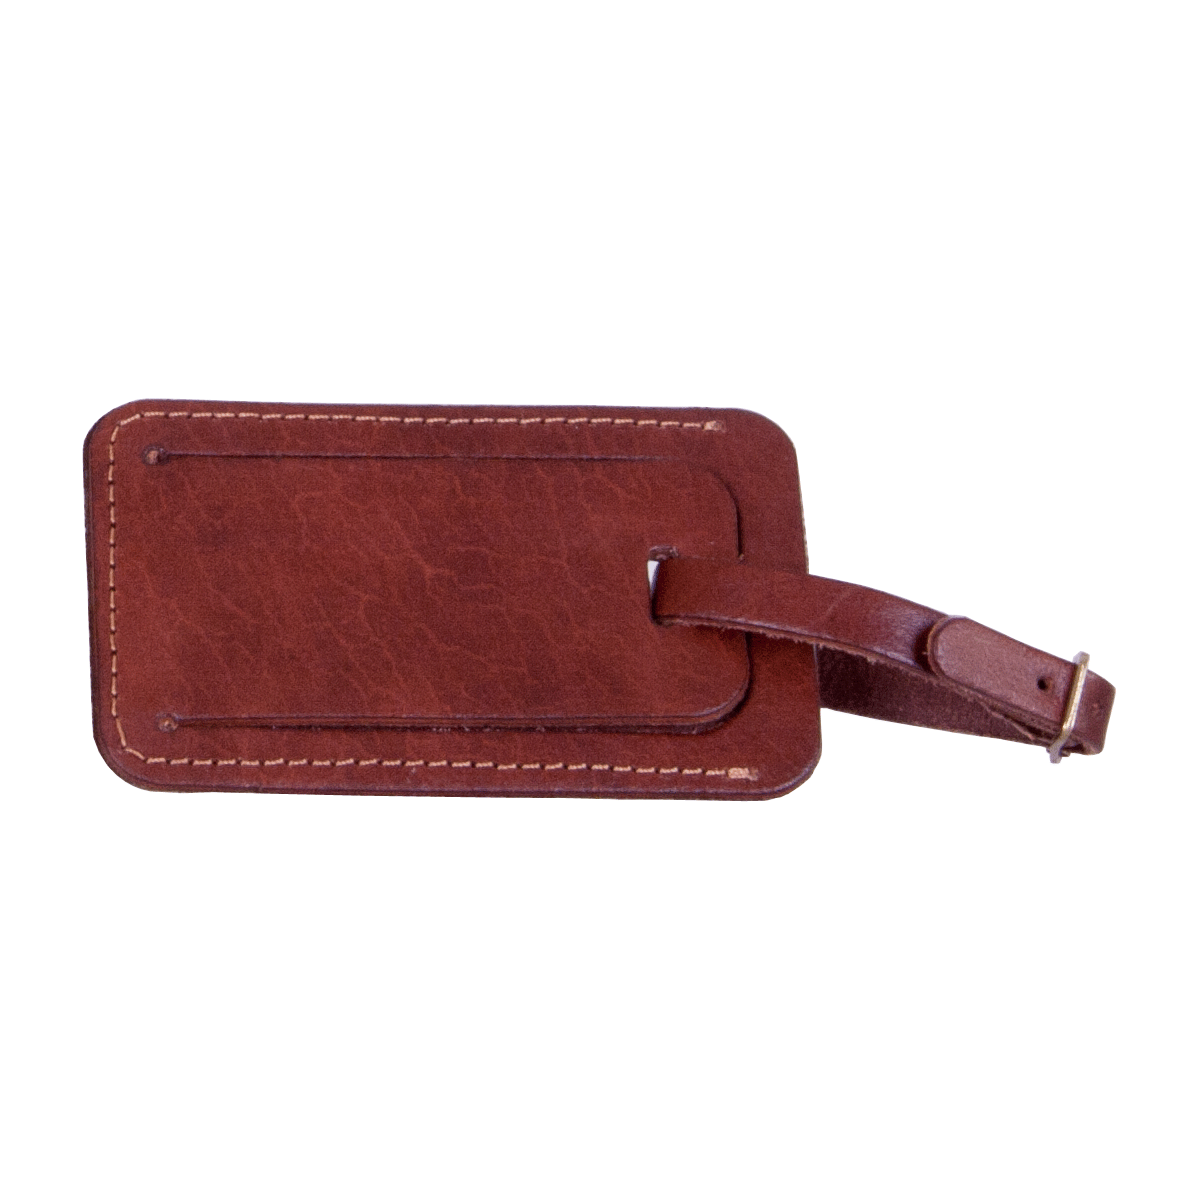 Leather Luggage Tag Mid Brown, part of the Luxury Leather Travel Set